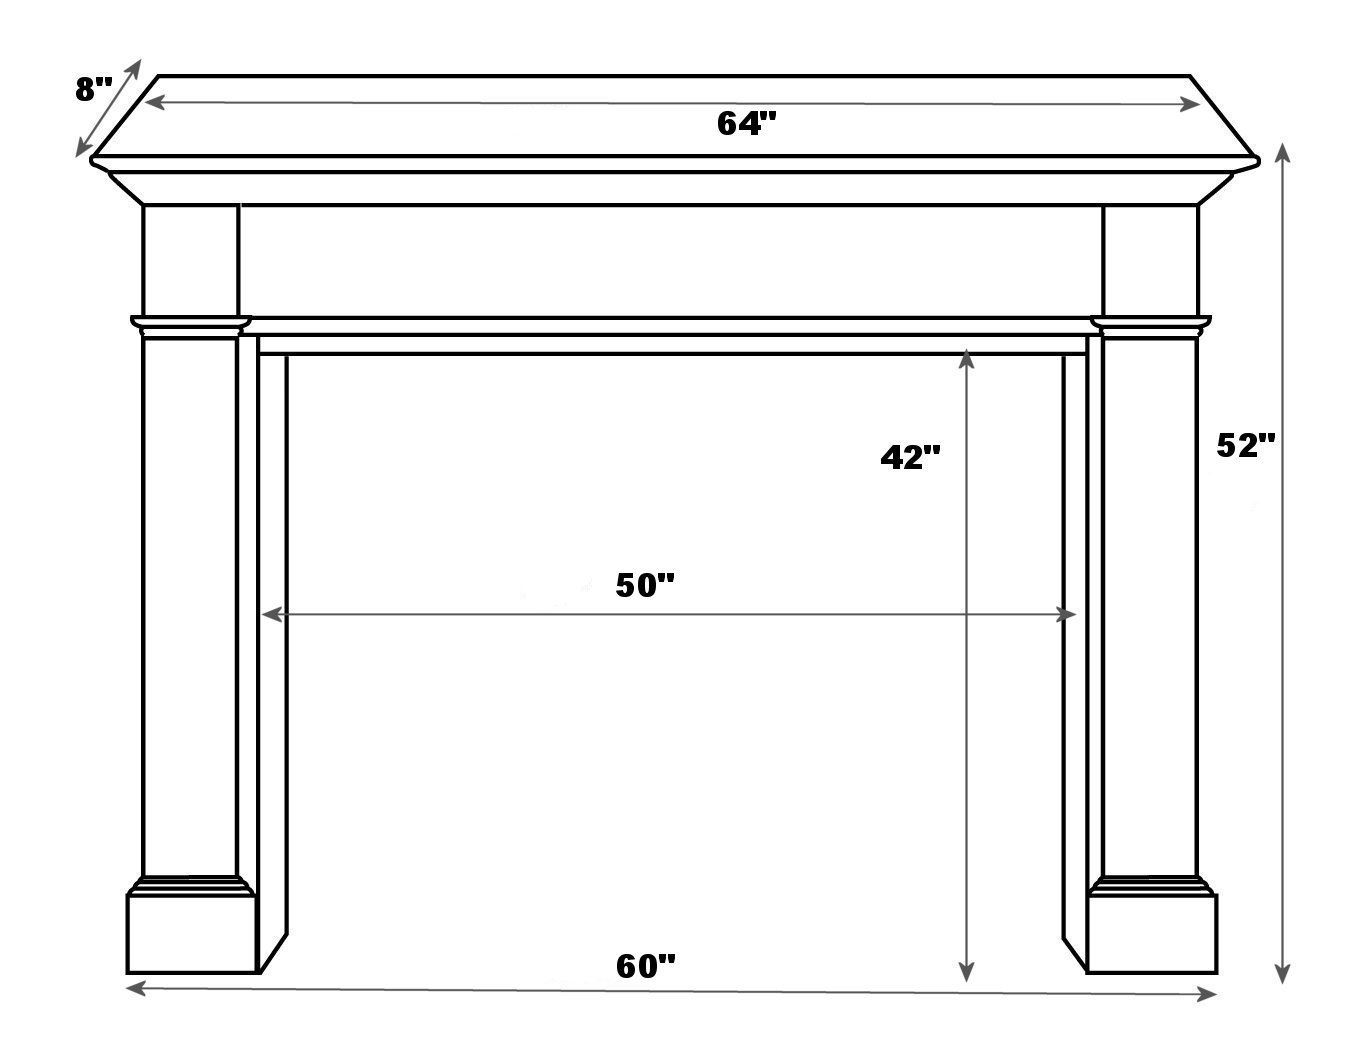 Fireplace Mantel Parts Image Result For Standard Mantel Height New House Fireplace